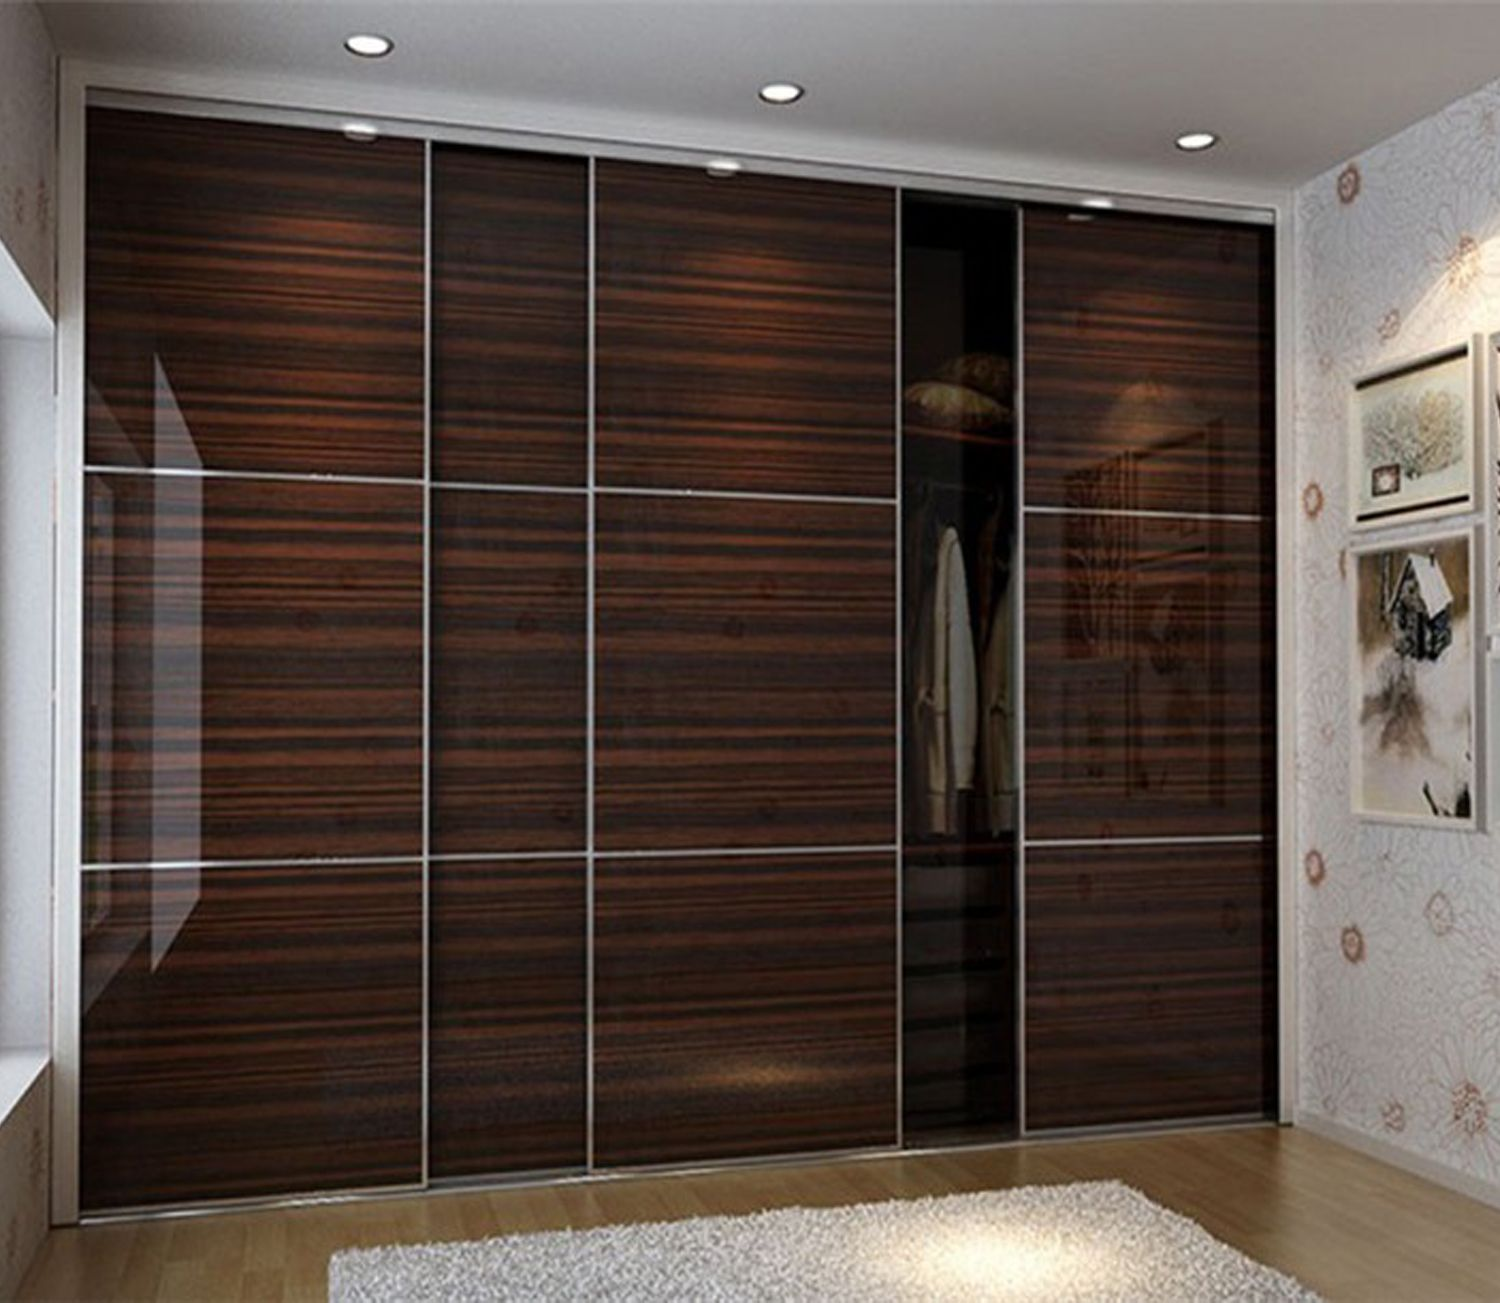 Superbe Laminate Wardrobe Designs In Black Bedroom Furniture. This Chocolate Wall  Wardrobe With Super Gloss And